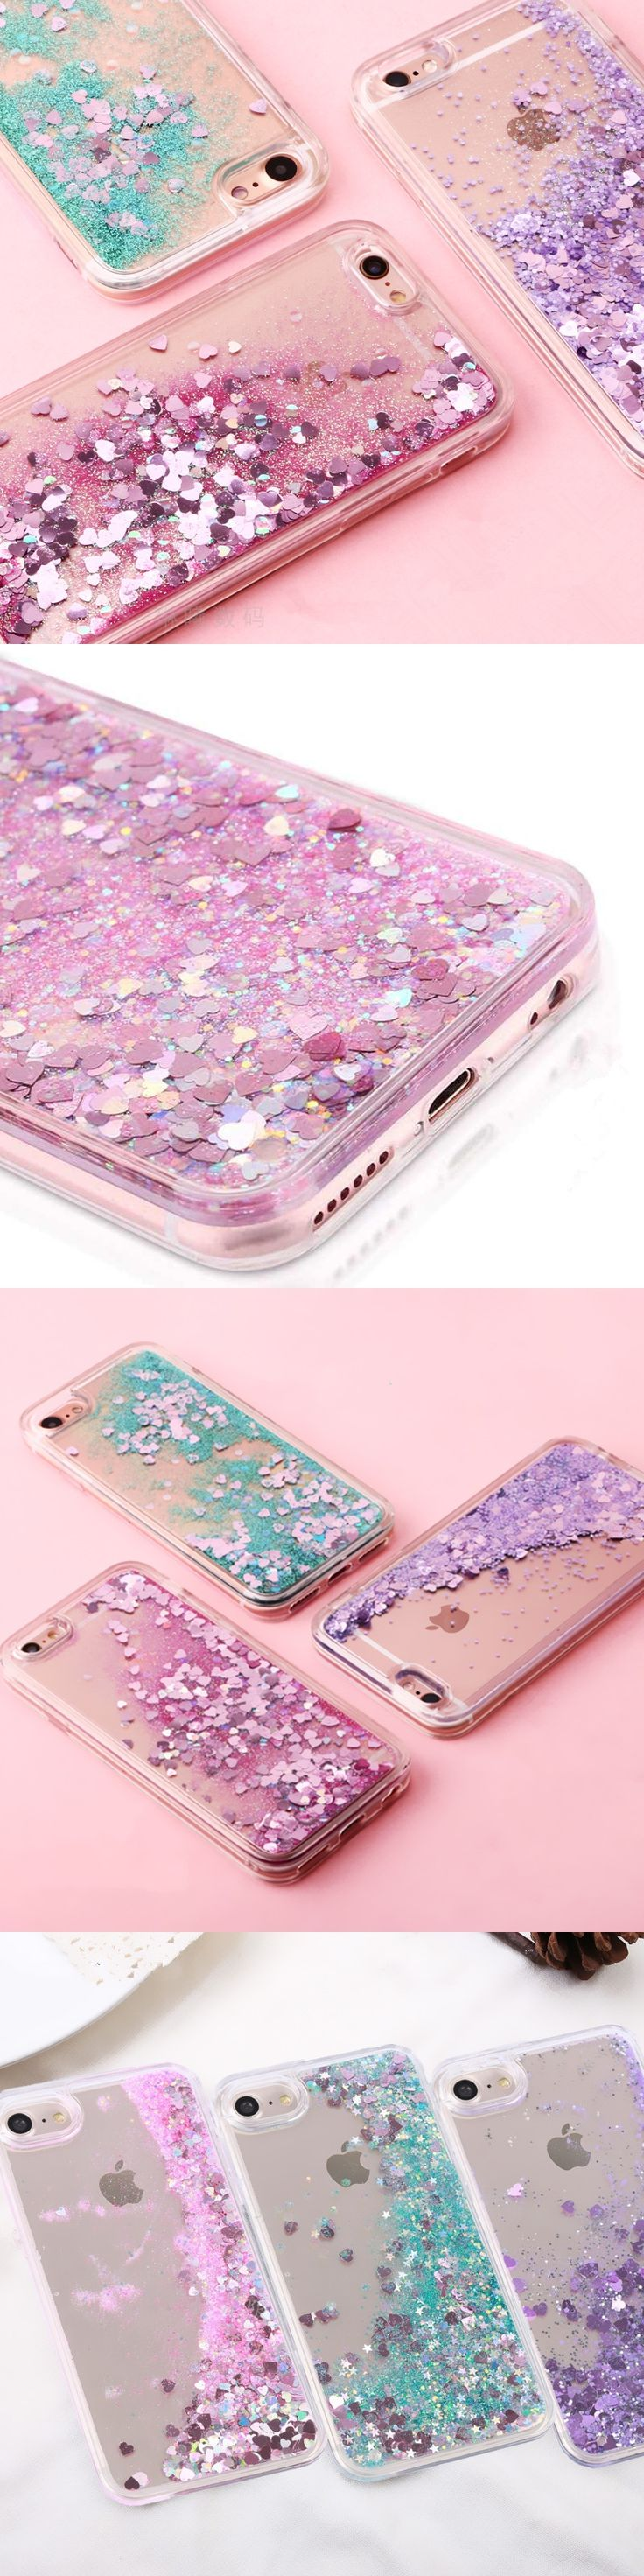 Dynamic Colorful Sequins Liquid Quicksand Glitter Stars meteor Sand Mobile Phone Cases For iphone 7 7Plus 6 6s Cover Capa Coque